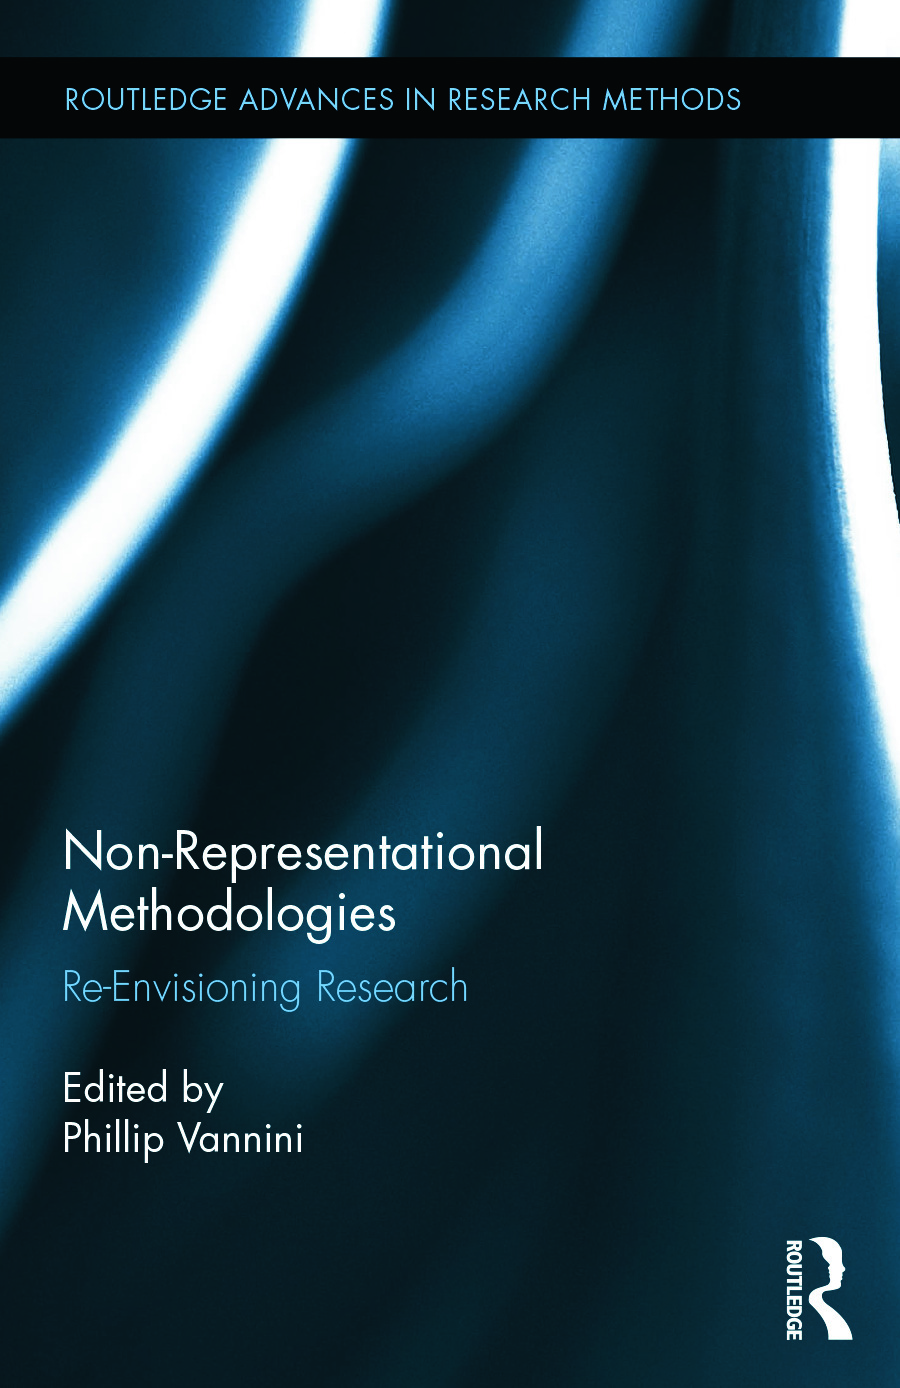 Non-Representational Methodologies: Re-Envisioning Research book cover